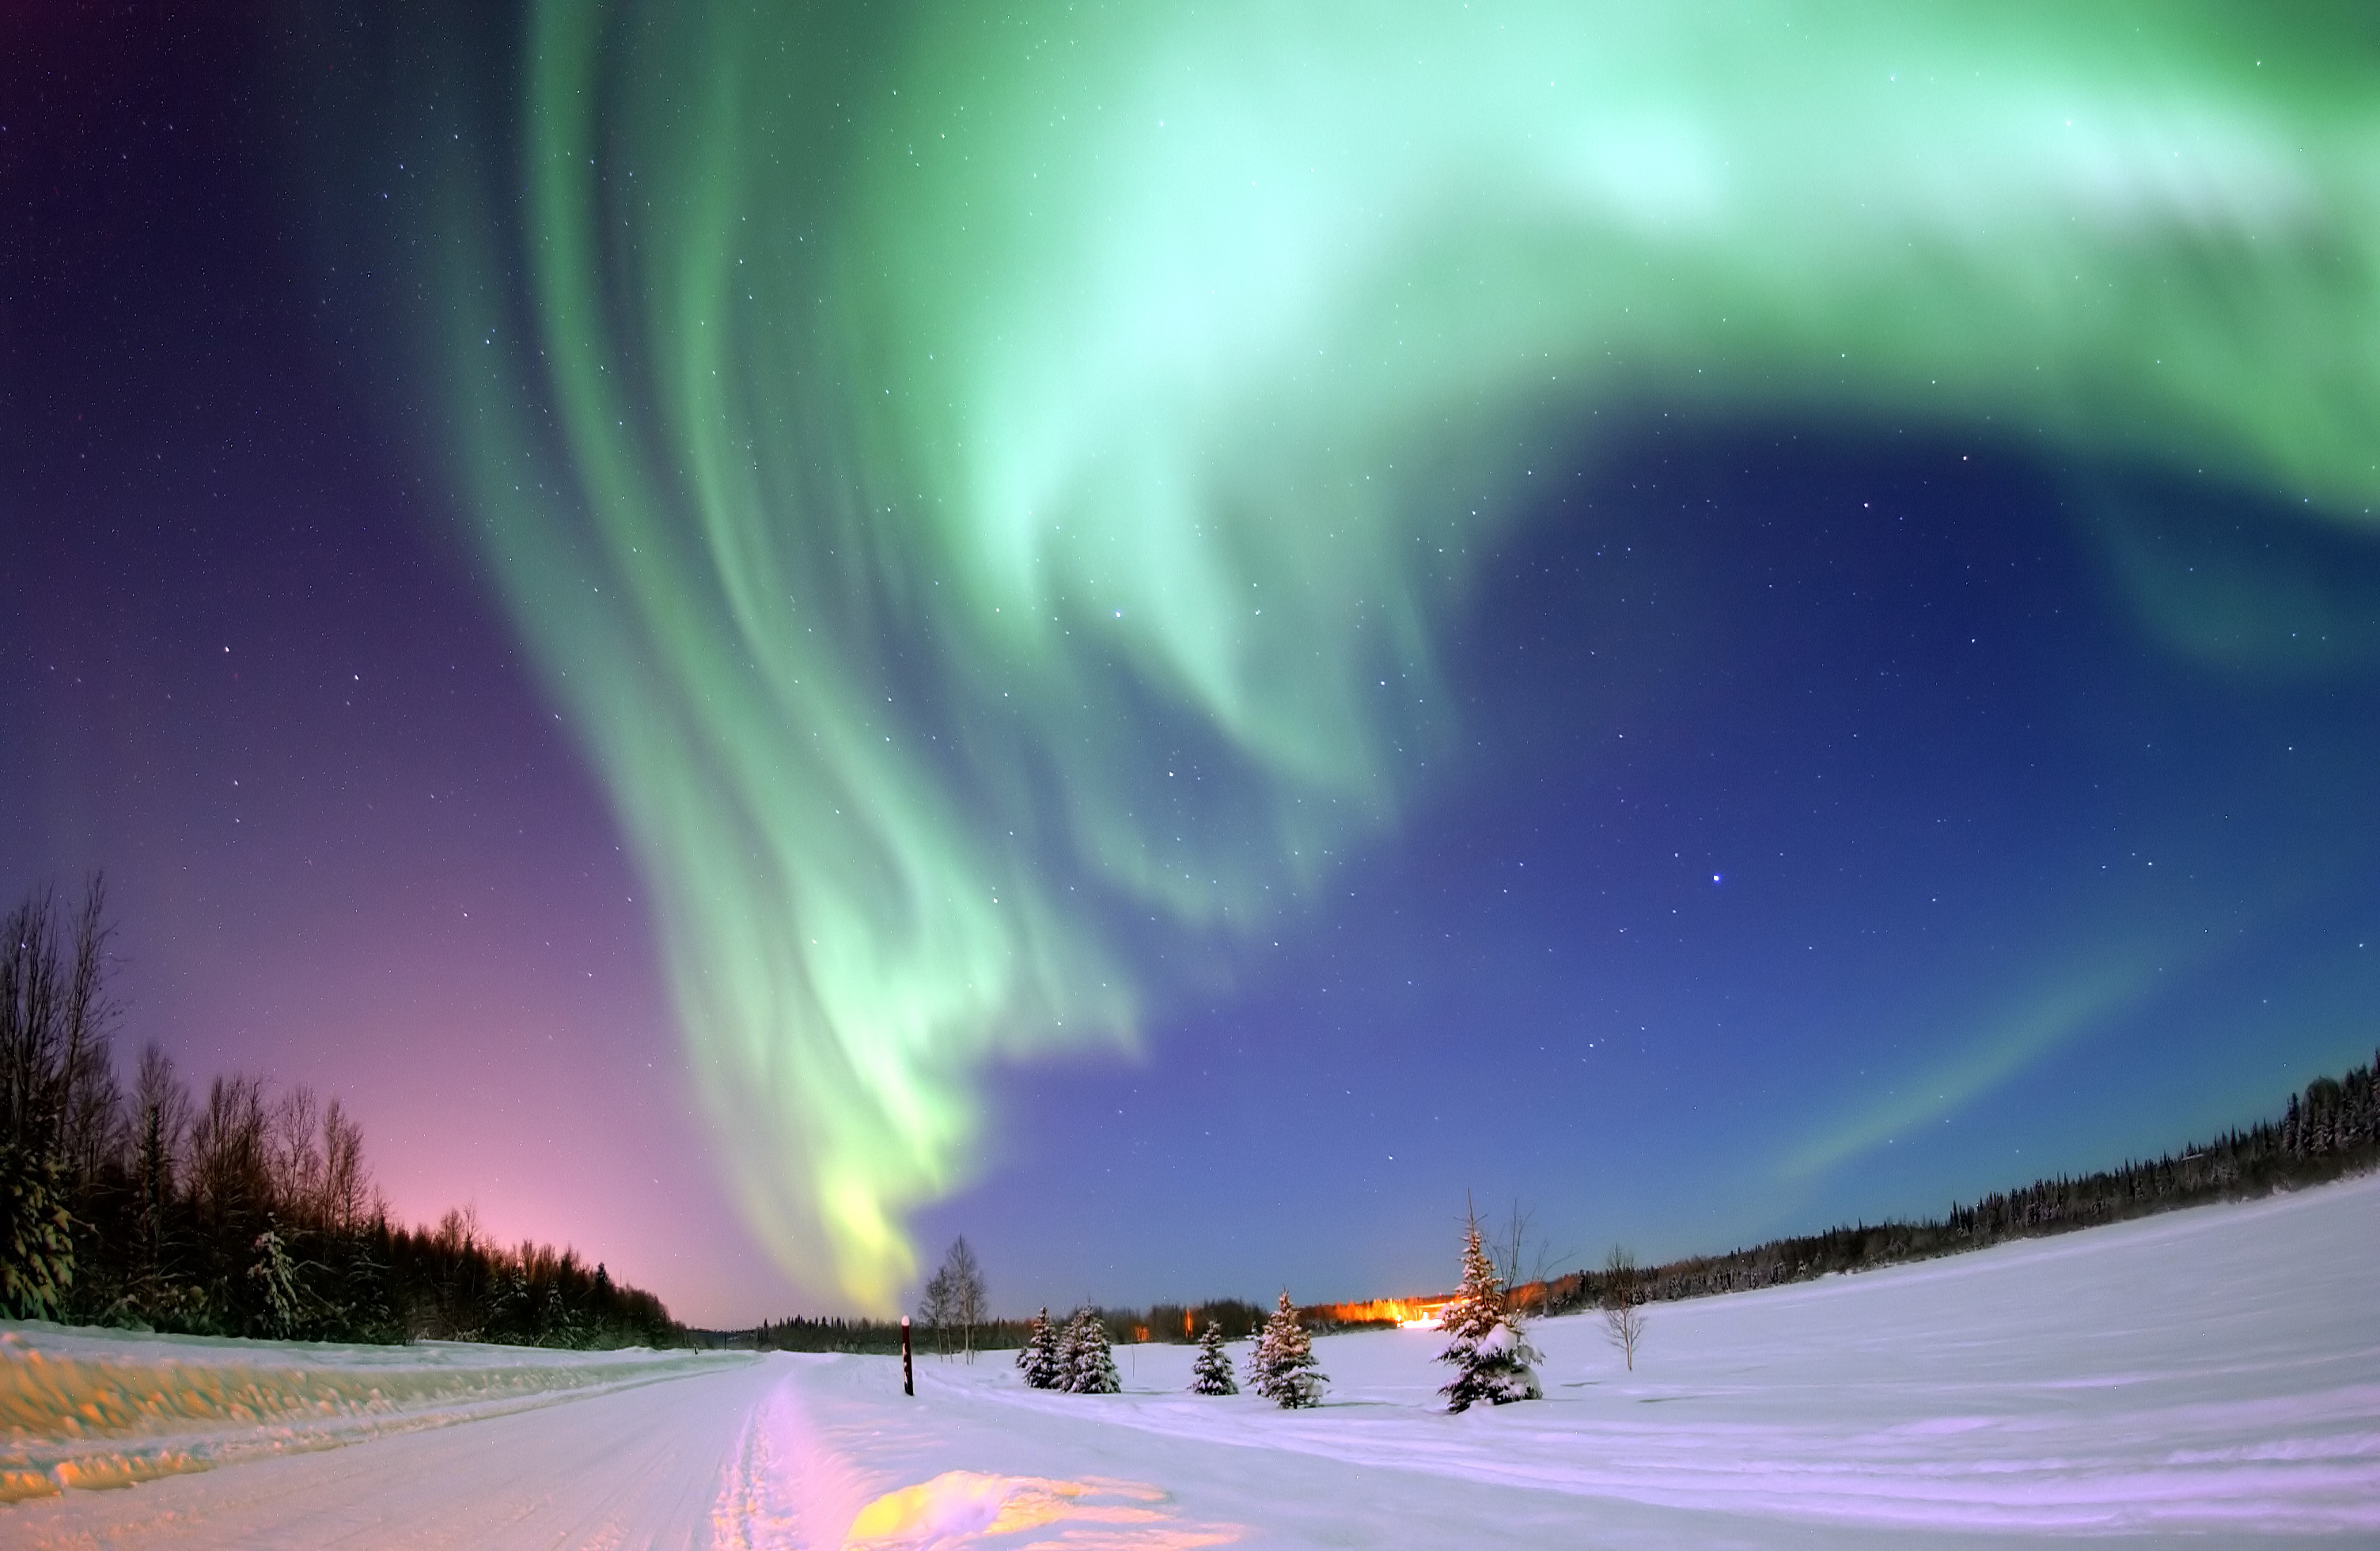 Northern Lights in Lapland. Photo: Flickr.